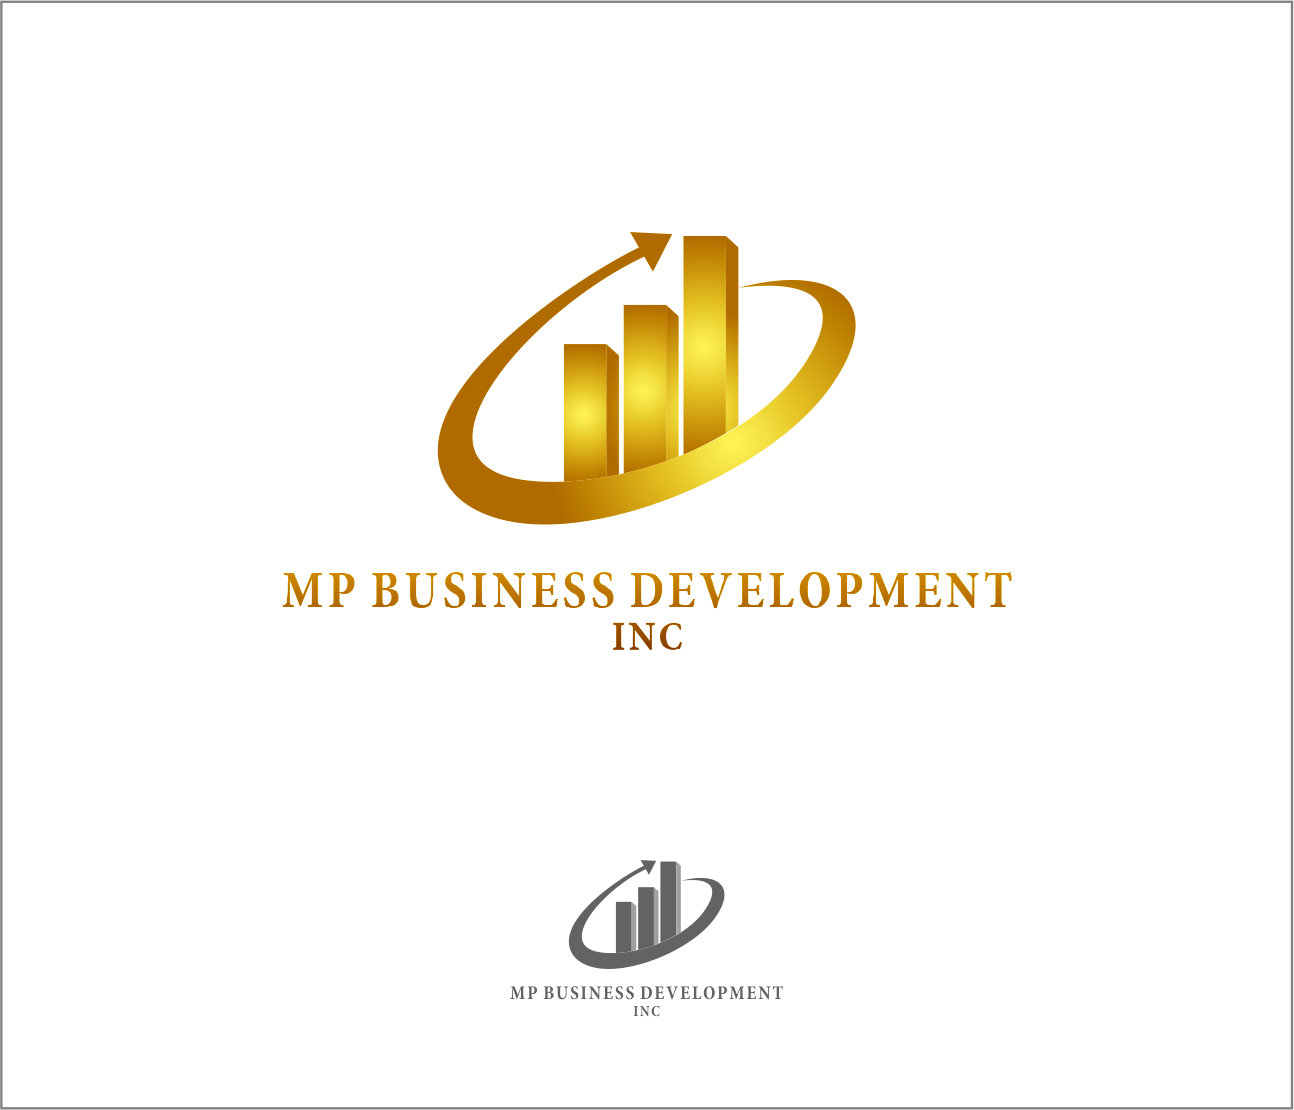 Logo Design by Armada Jamaluddin - Entry No. 236 in the Logo Design Contest MP Business Development Inc. Logo Design.